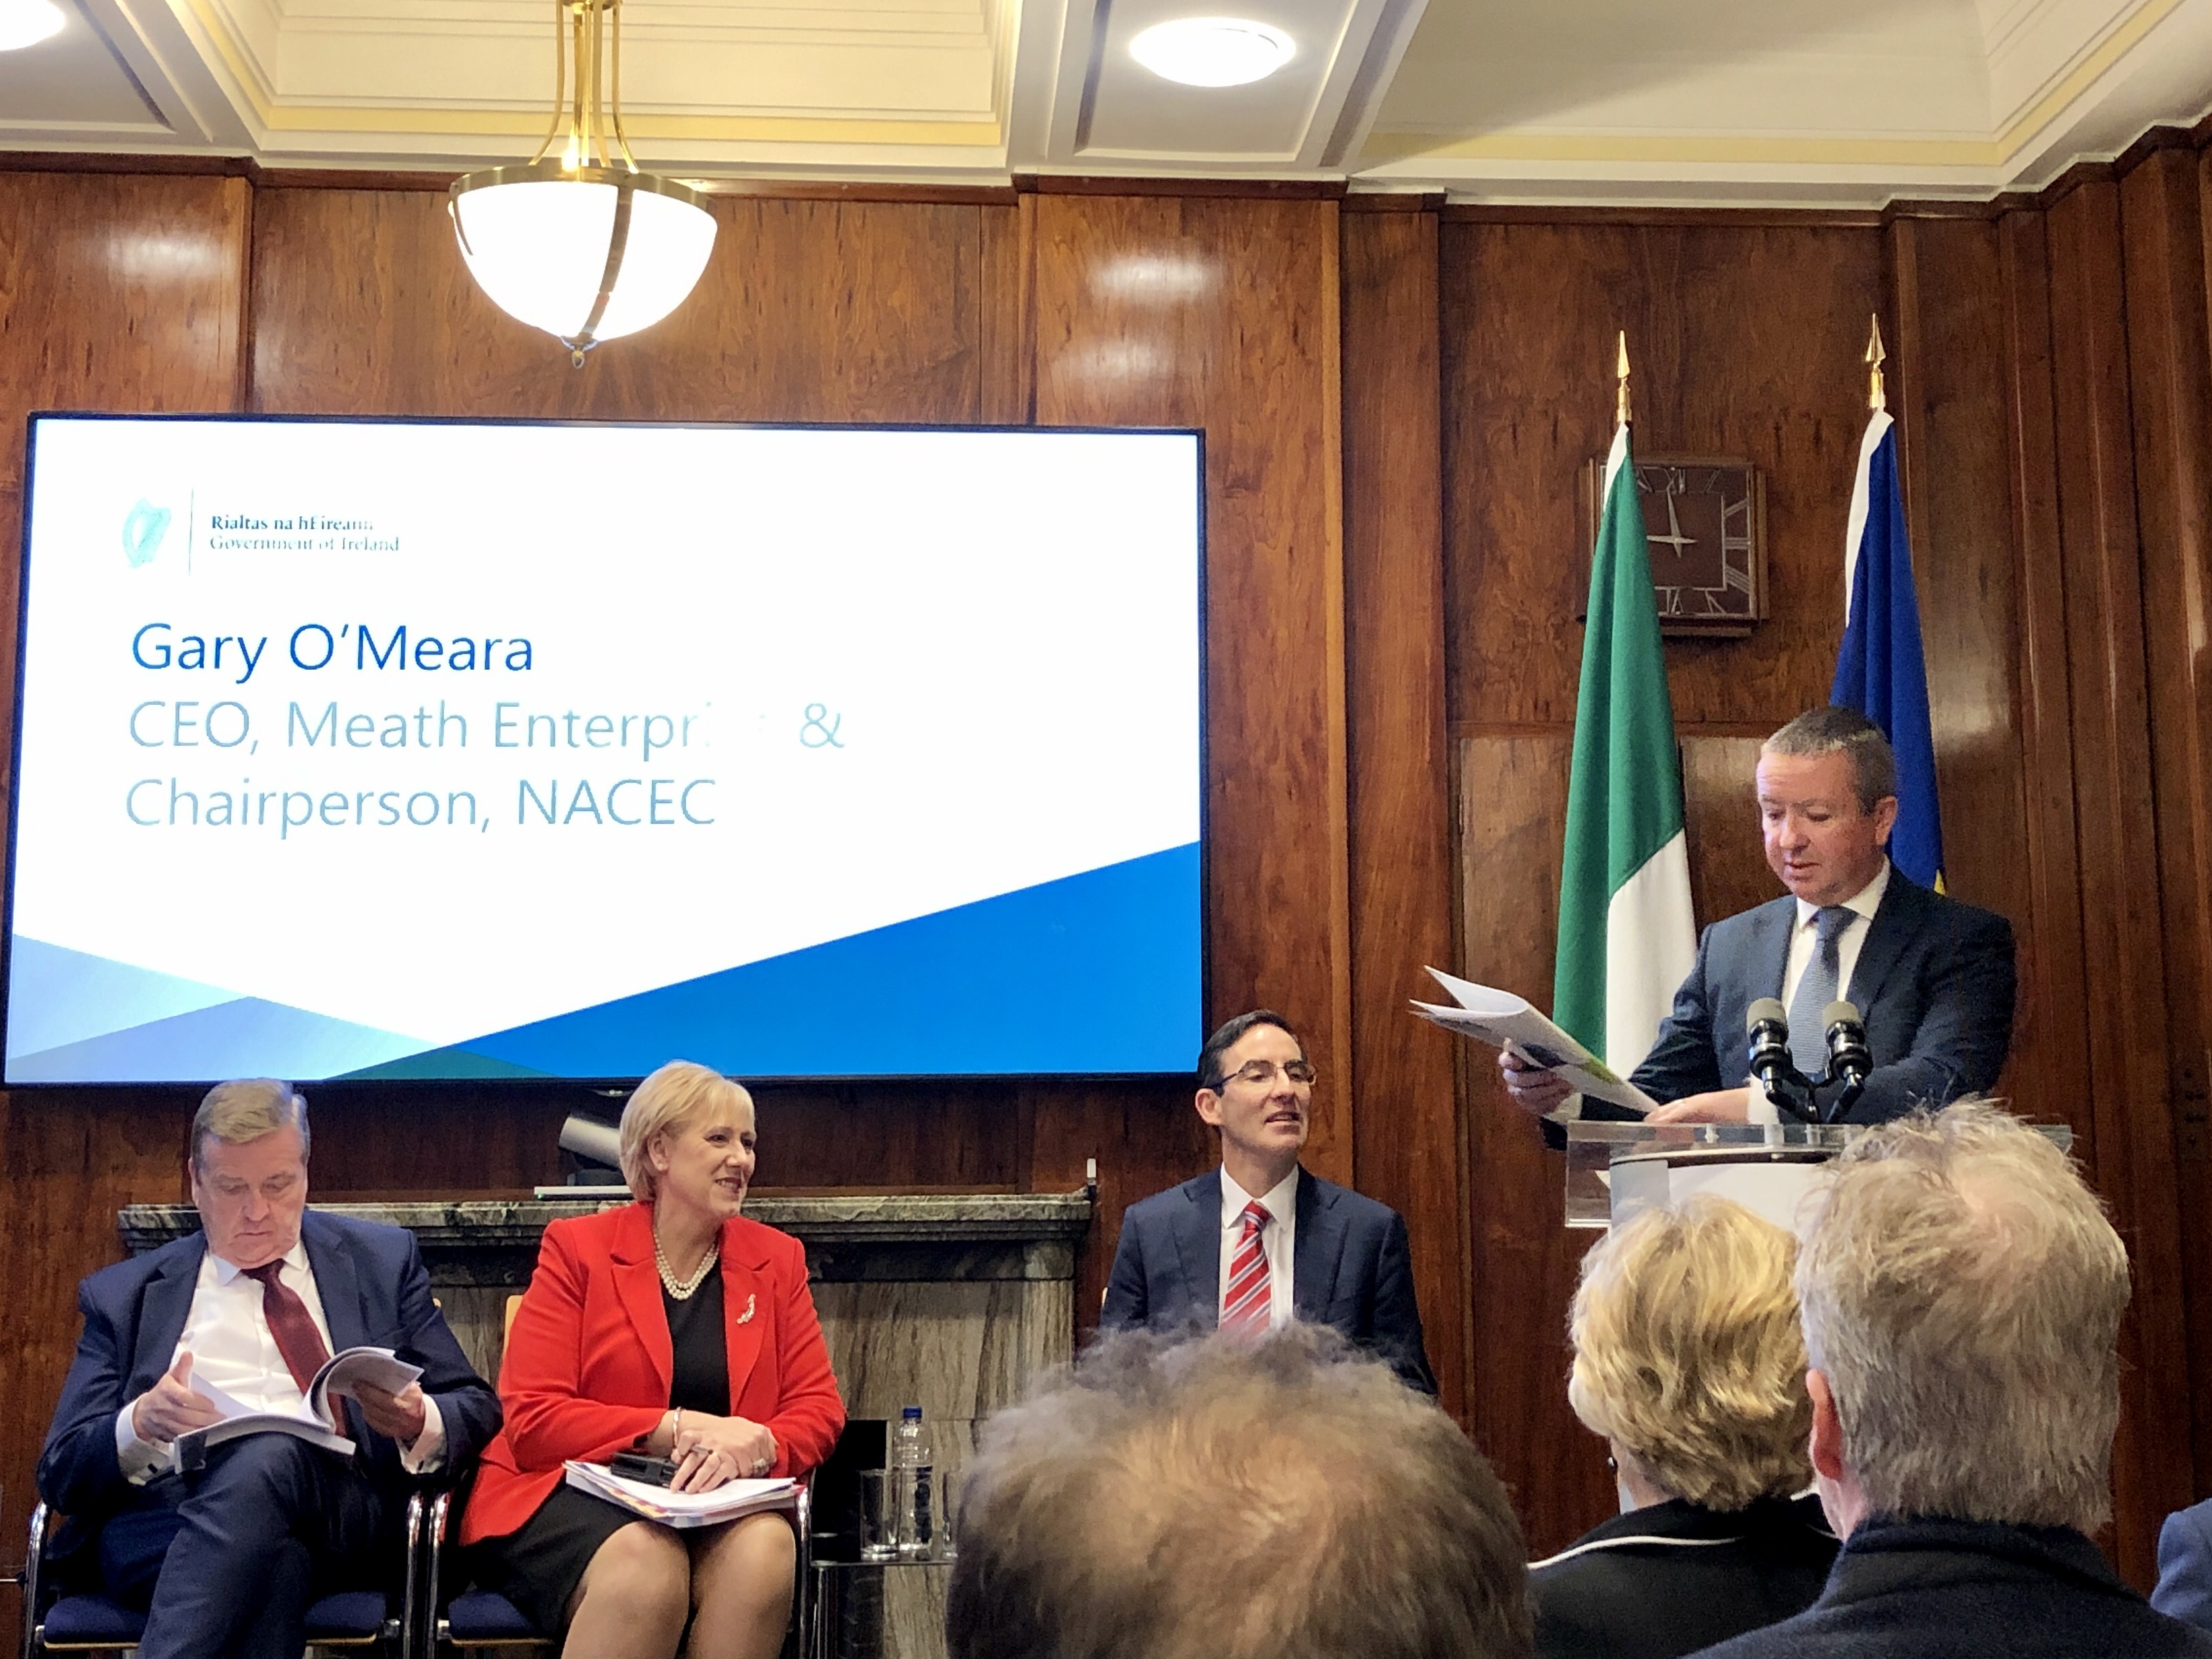 Gary O'Meara of Meath Enterprise presenting to OECD and the Department of Business, Enterprise and Innovation DBEI at the launch of the OECD review in October 2019